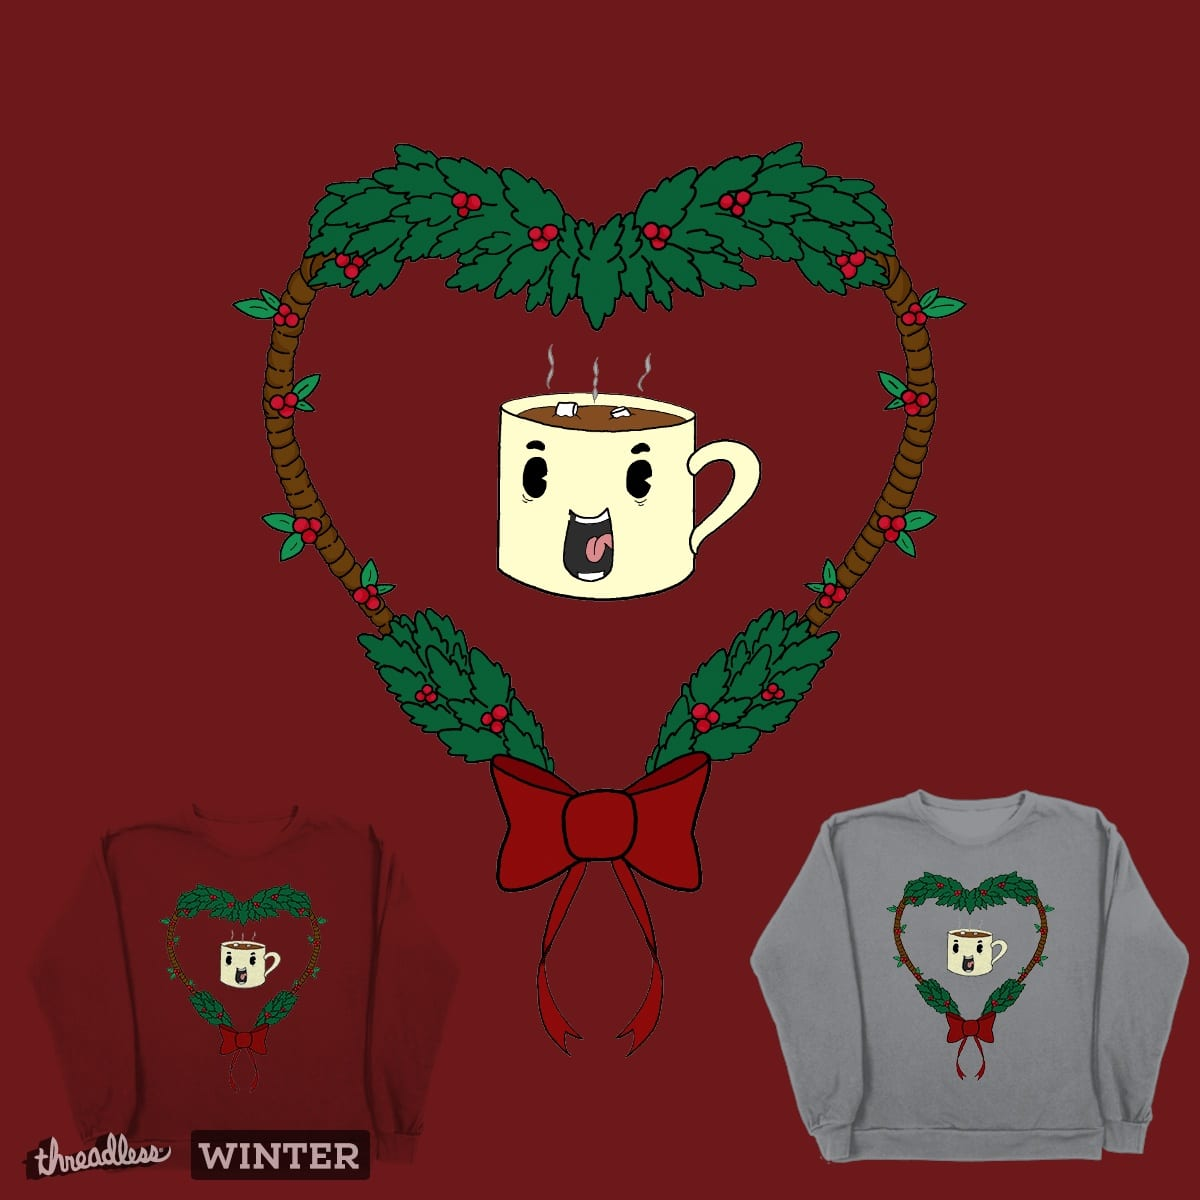 In Love With The Cocoa by x3duckky on Threadless